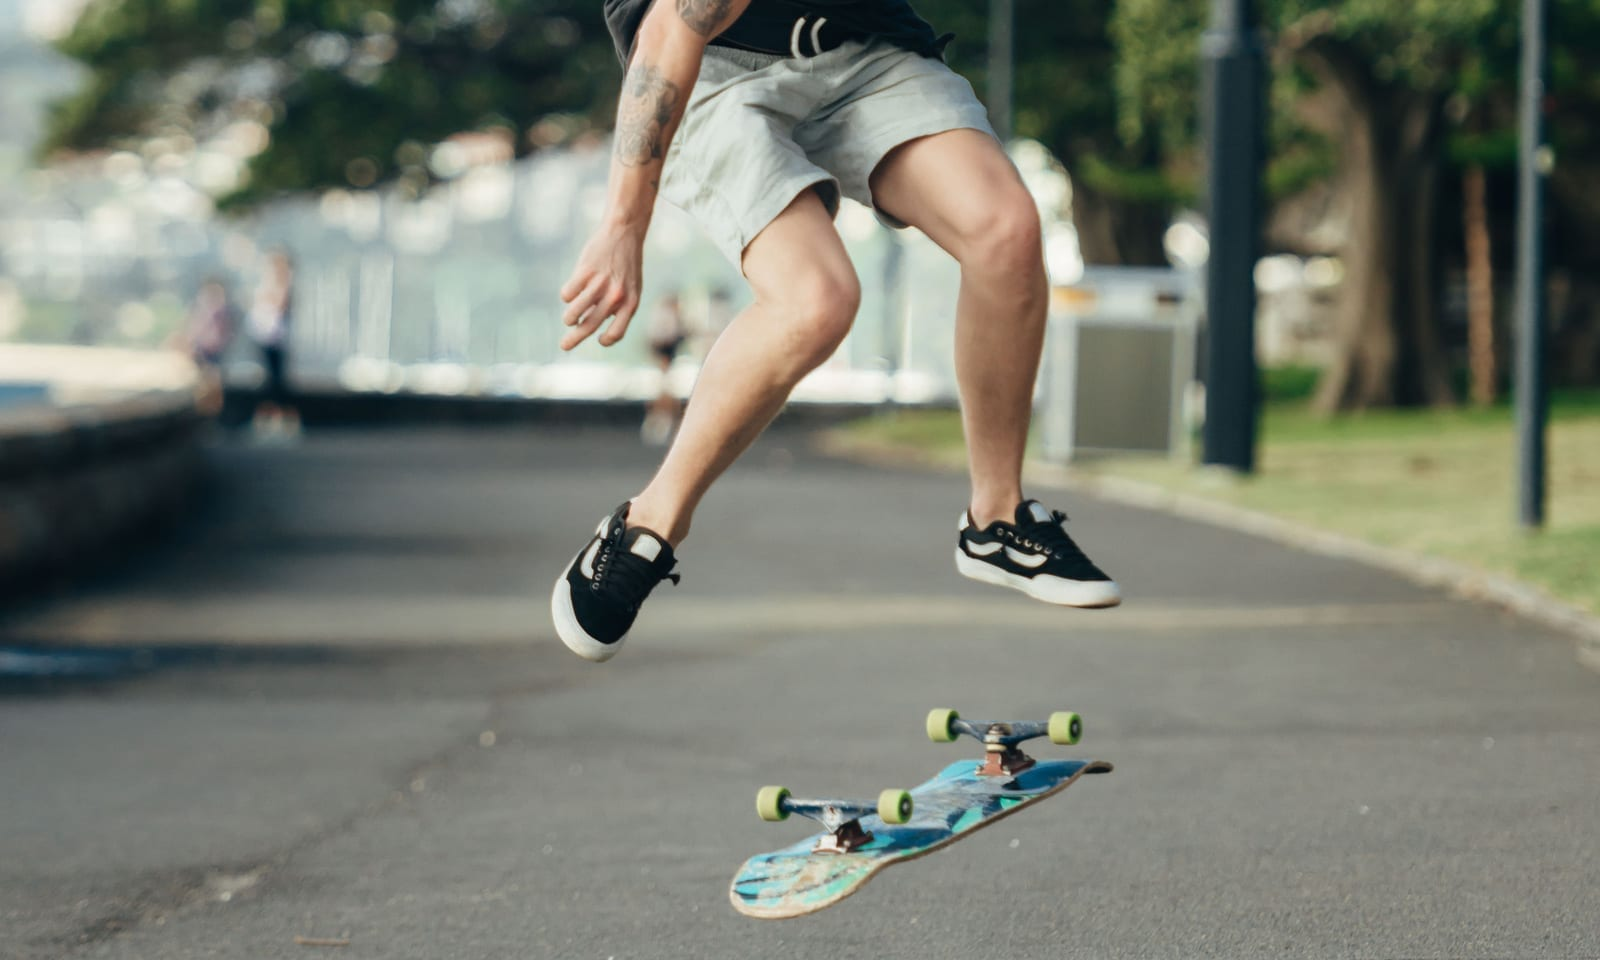 skate-shoes-image-1